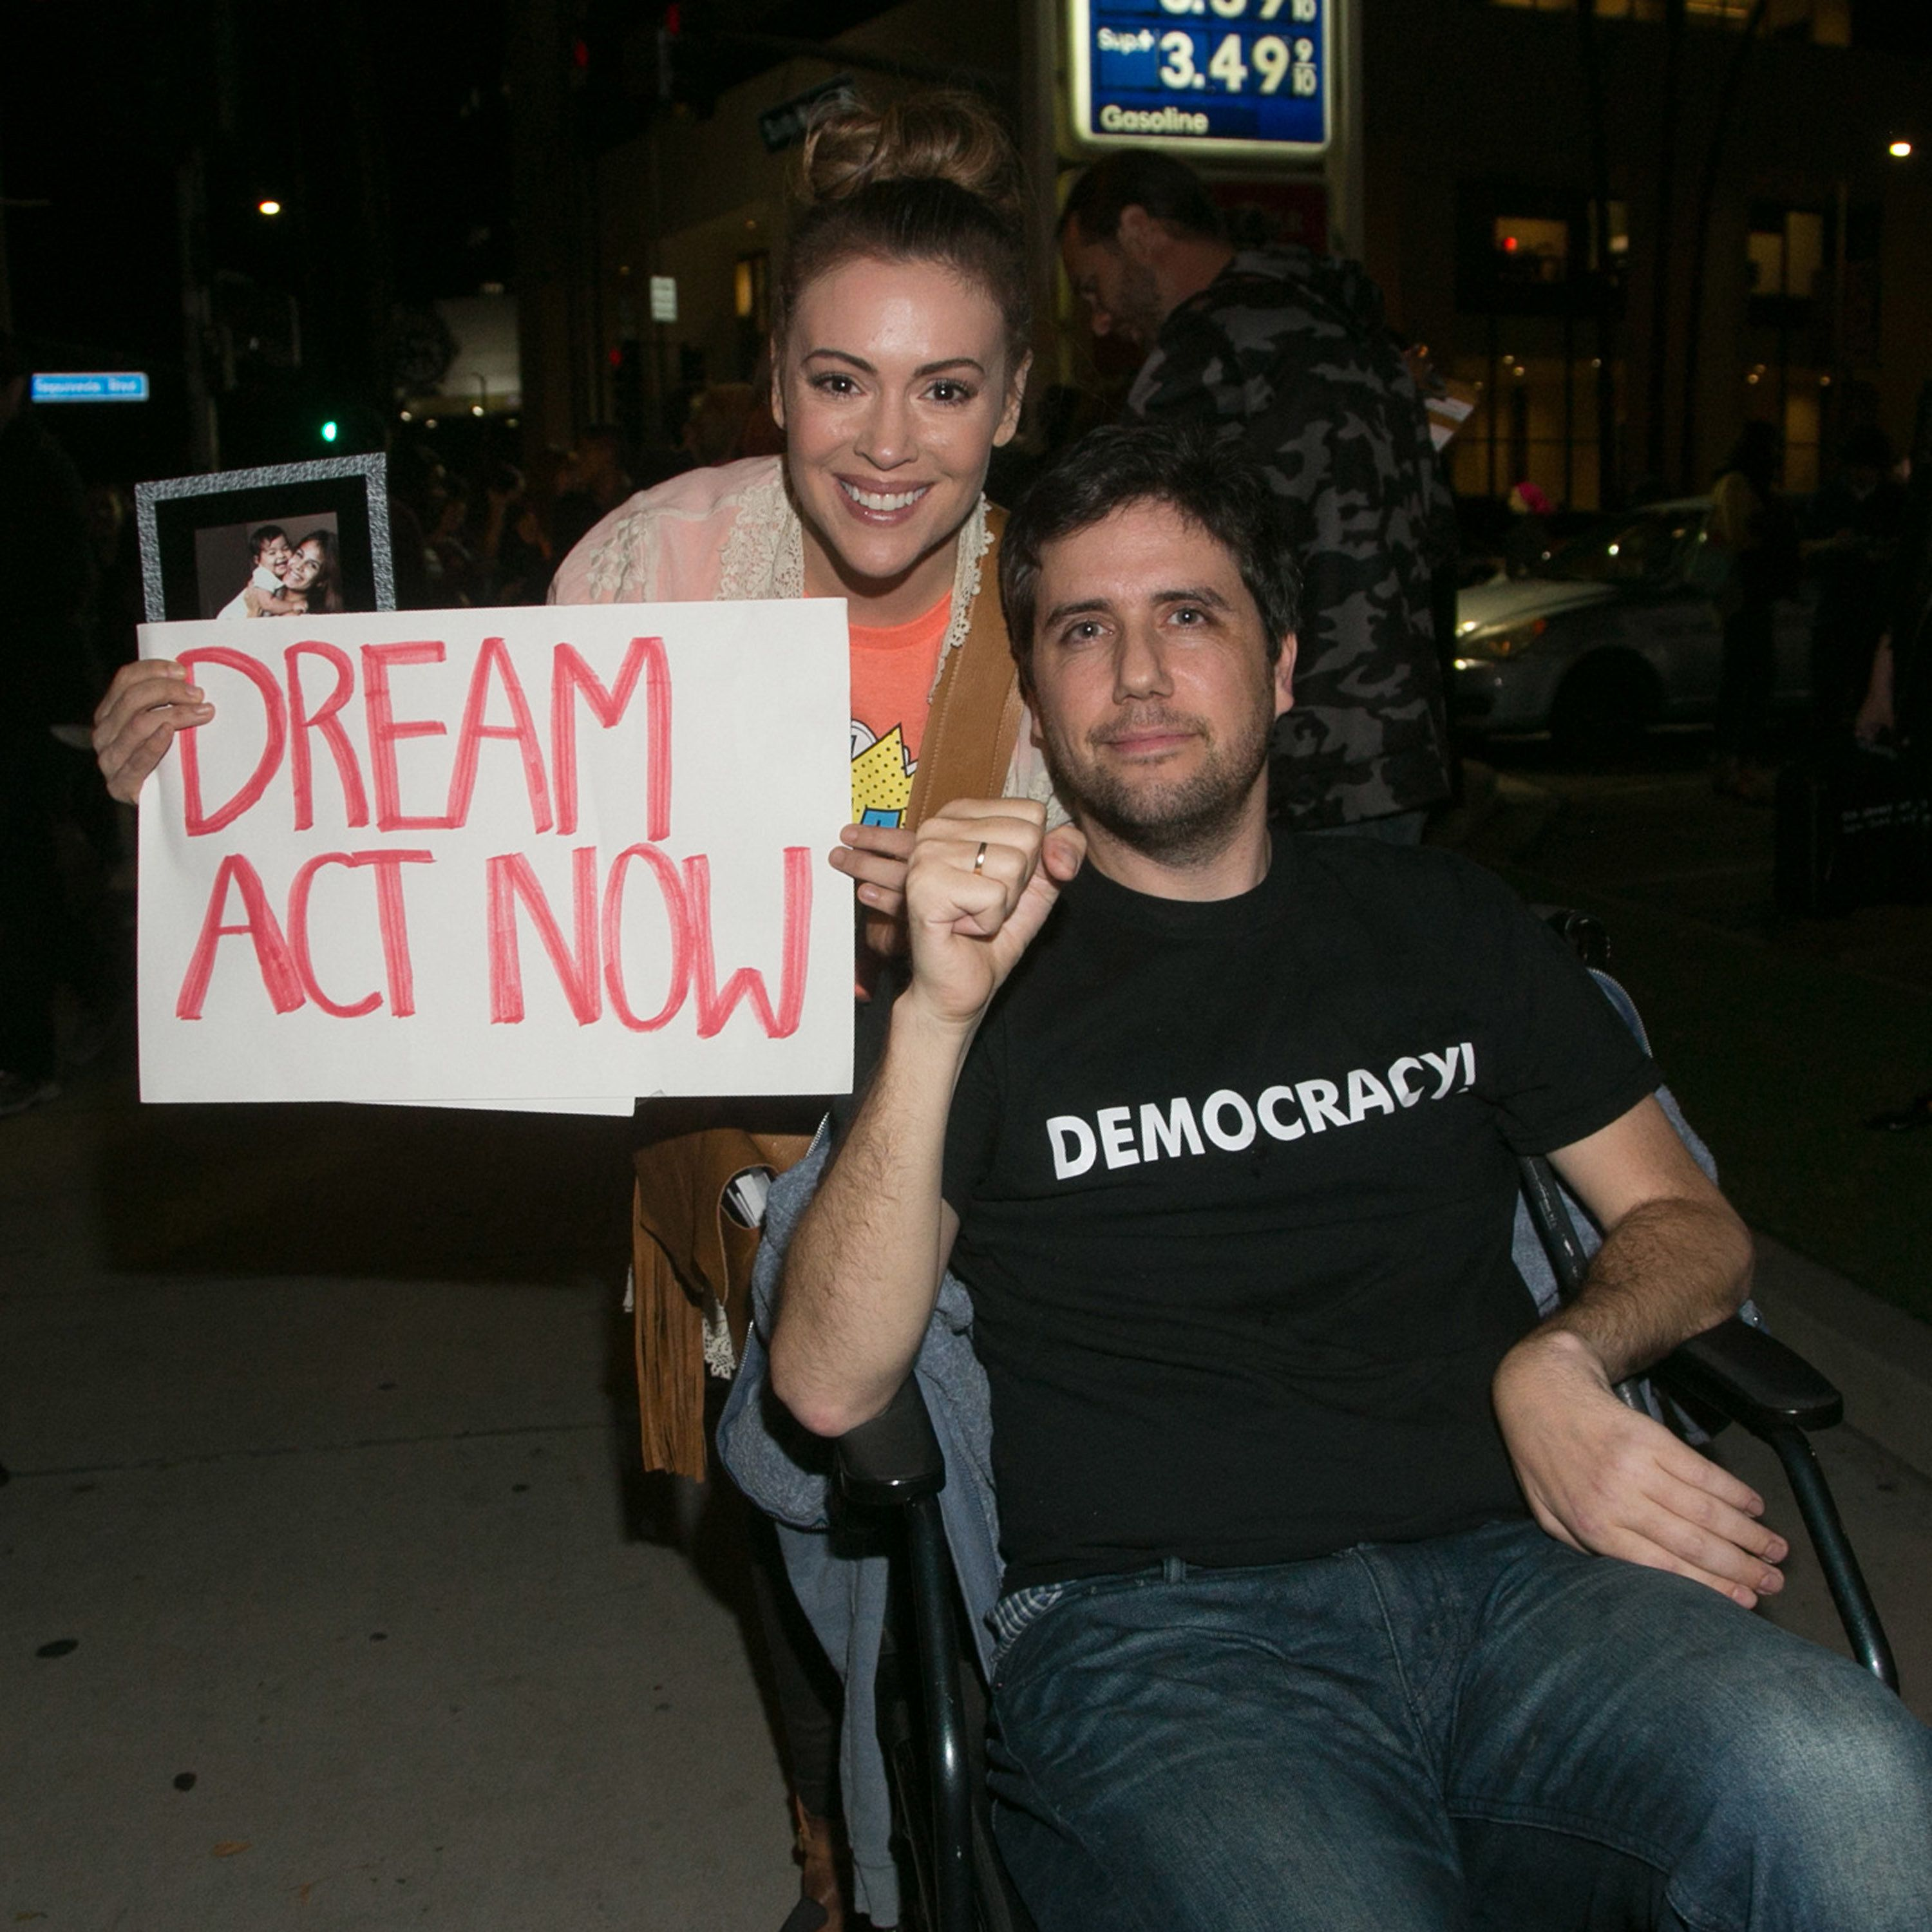 LOS ANGELES, CA - JANUARY 03:  Alyssa Milano (L) and Ady Barkan attend the Los Angeles Supports a Dream Act Now! protest at the office of California Senator Dianne Feinstein on January 3, 2018 in Los Angeles, California.  (Photo by Gabriel Olsen/Getty Images)